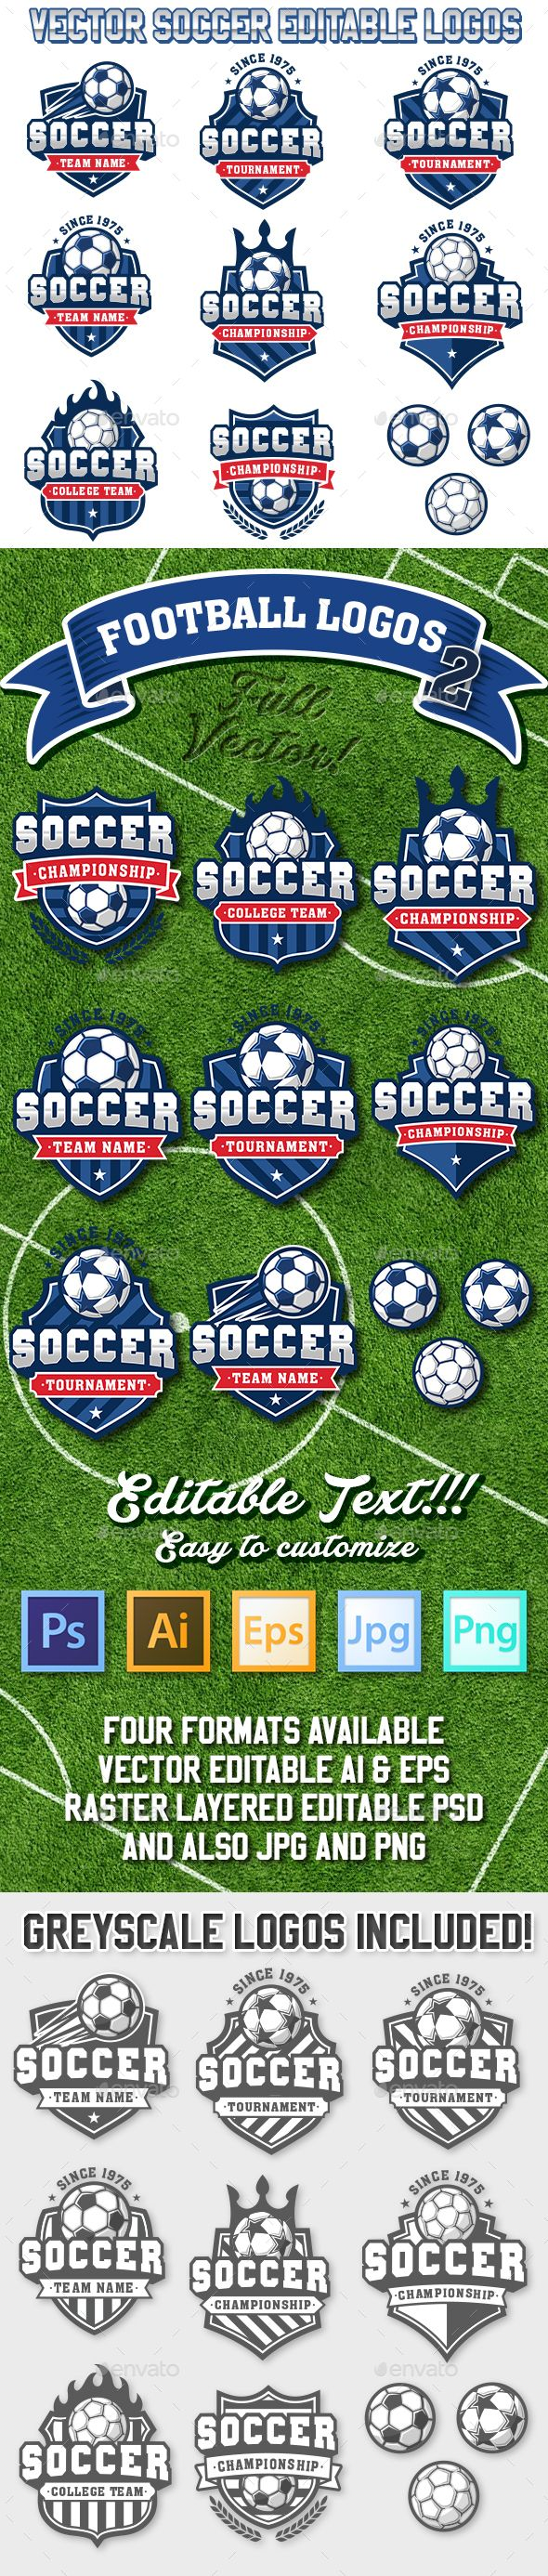 Soccer and Football Logos 2 by Pingebat Collection of eight colorful Vector football or soccer logo and insignias Included in the download are all logos as PSD Hi reso